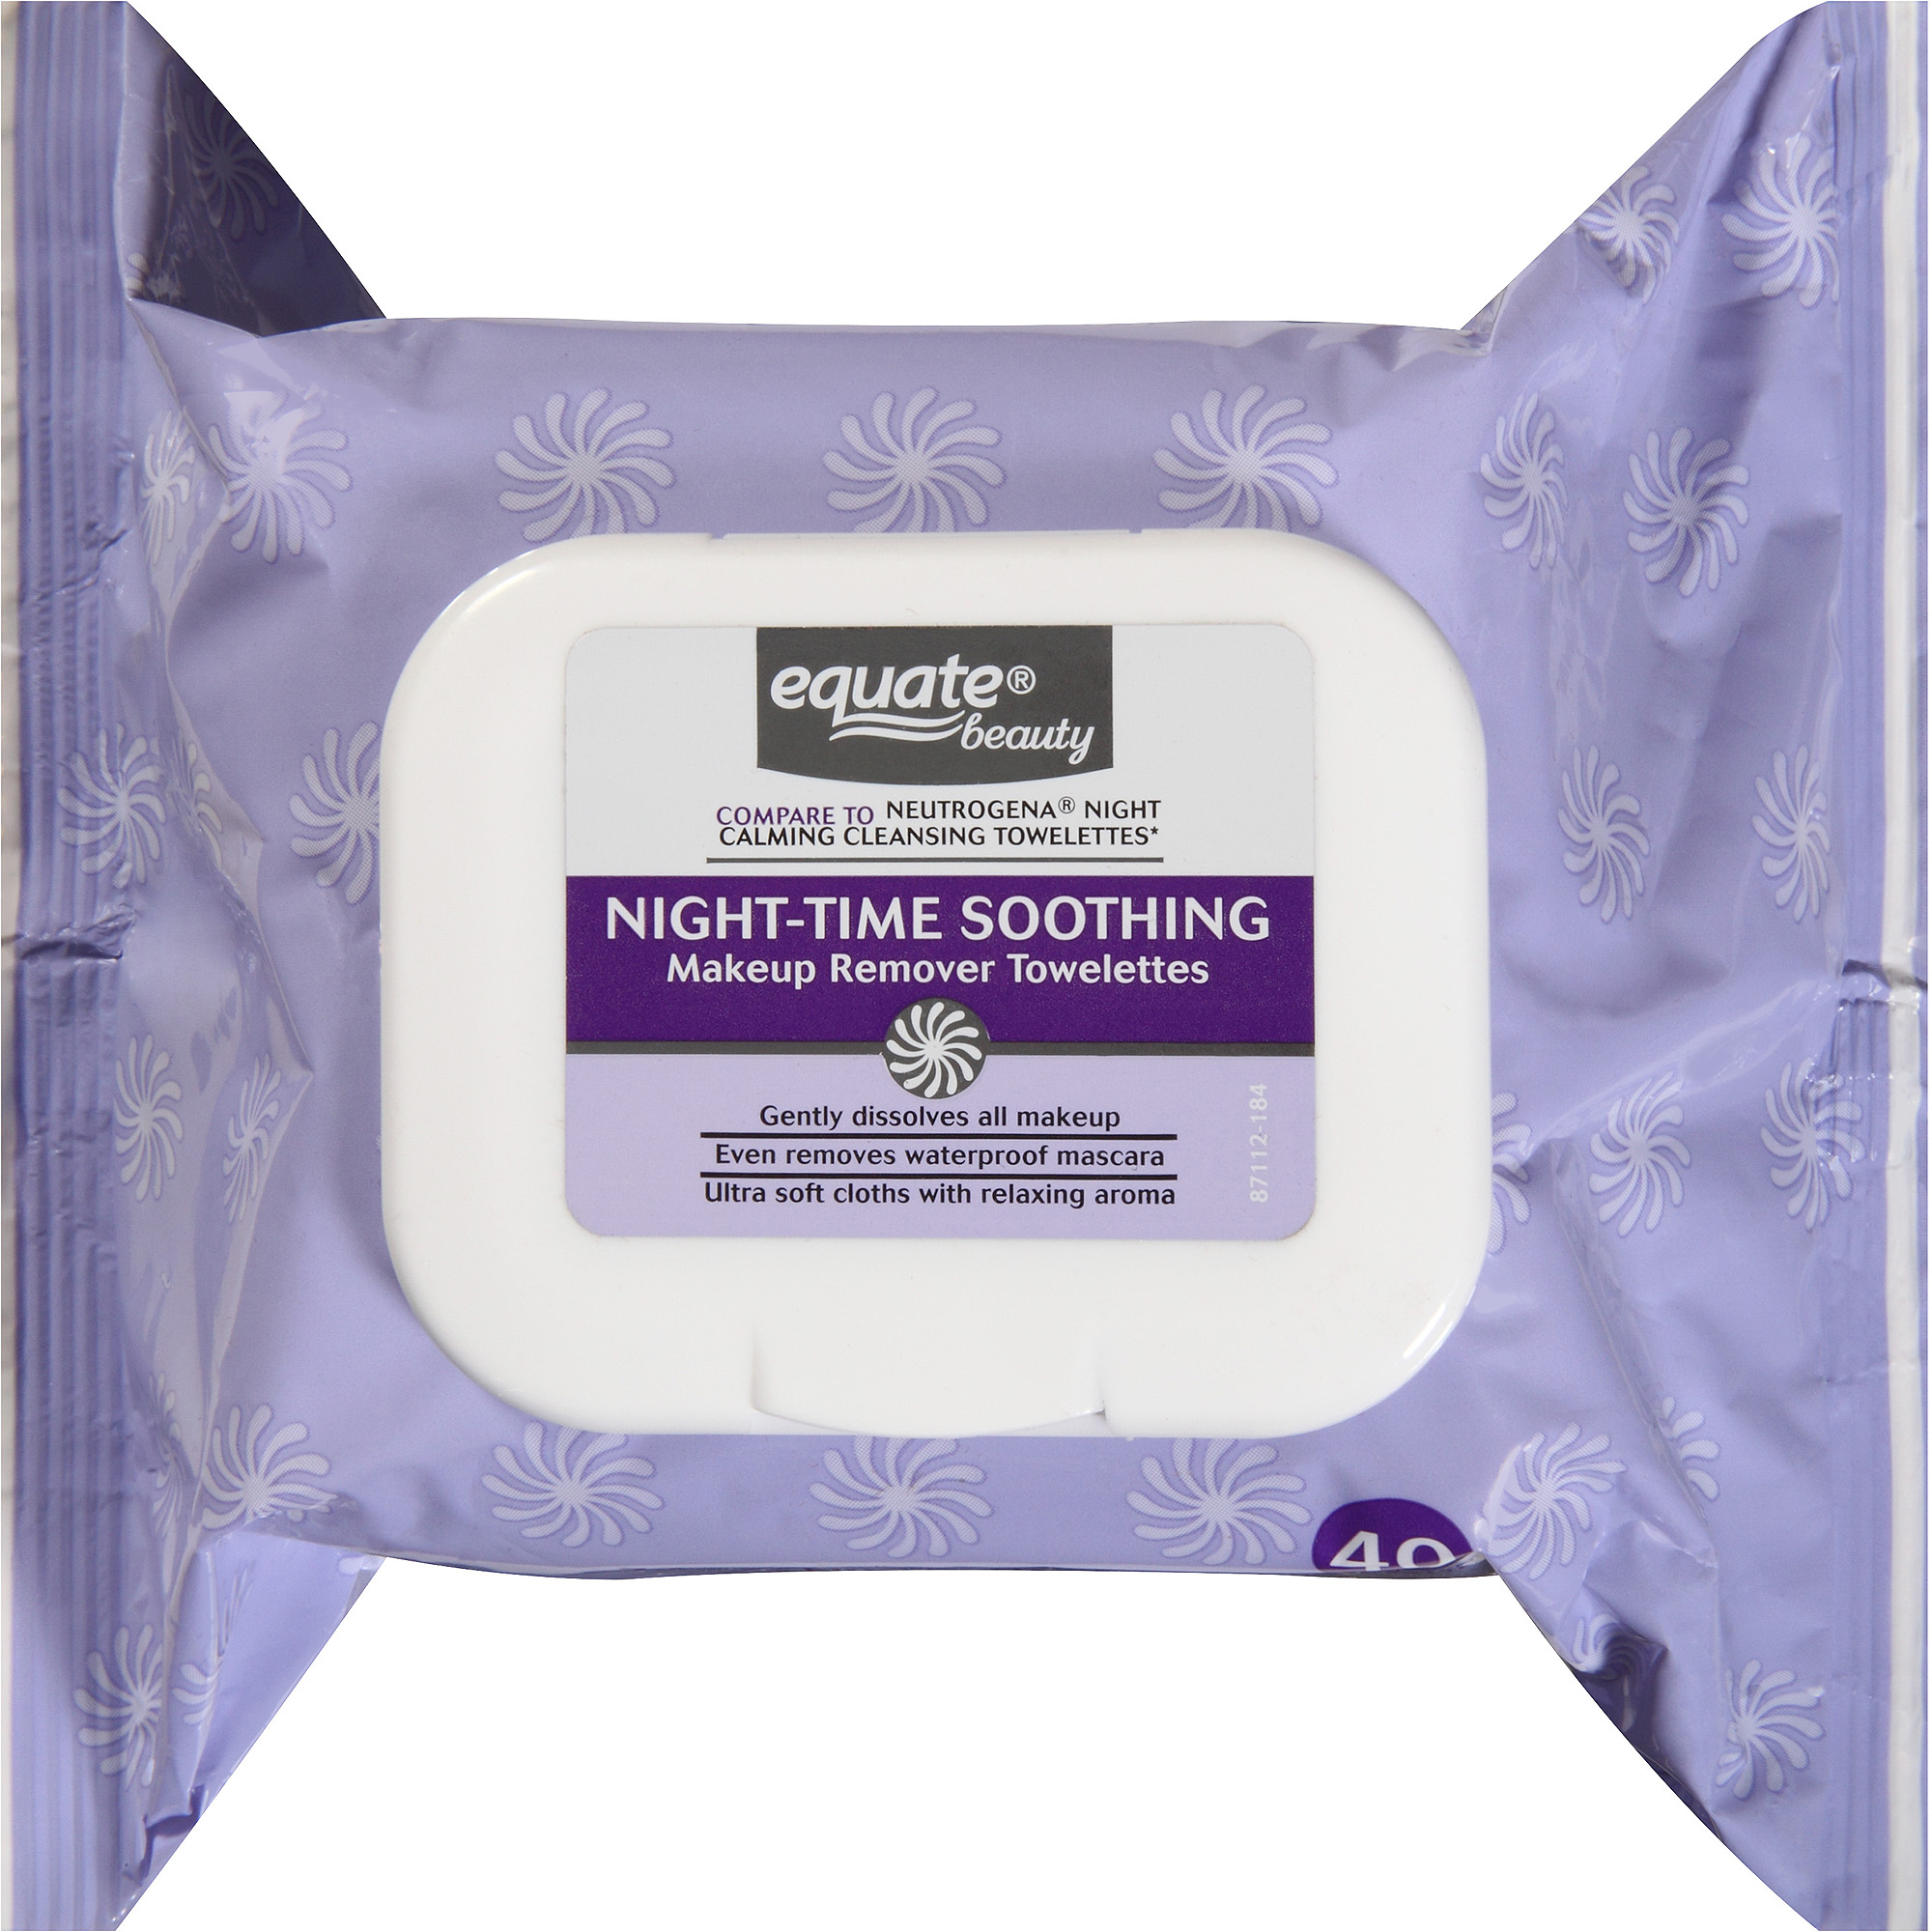 Equate Beauty Night-Time Soothing Makeup Remover Towelettes, 40 sheets